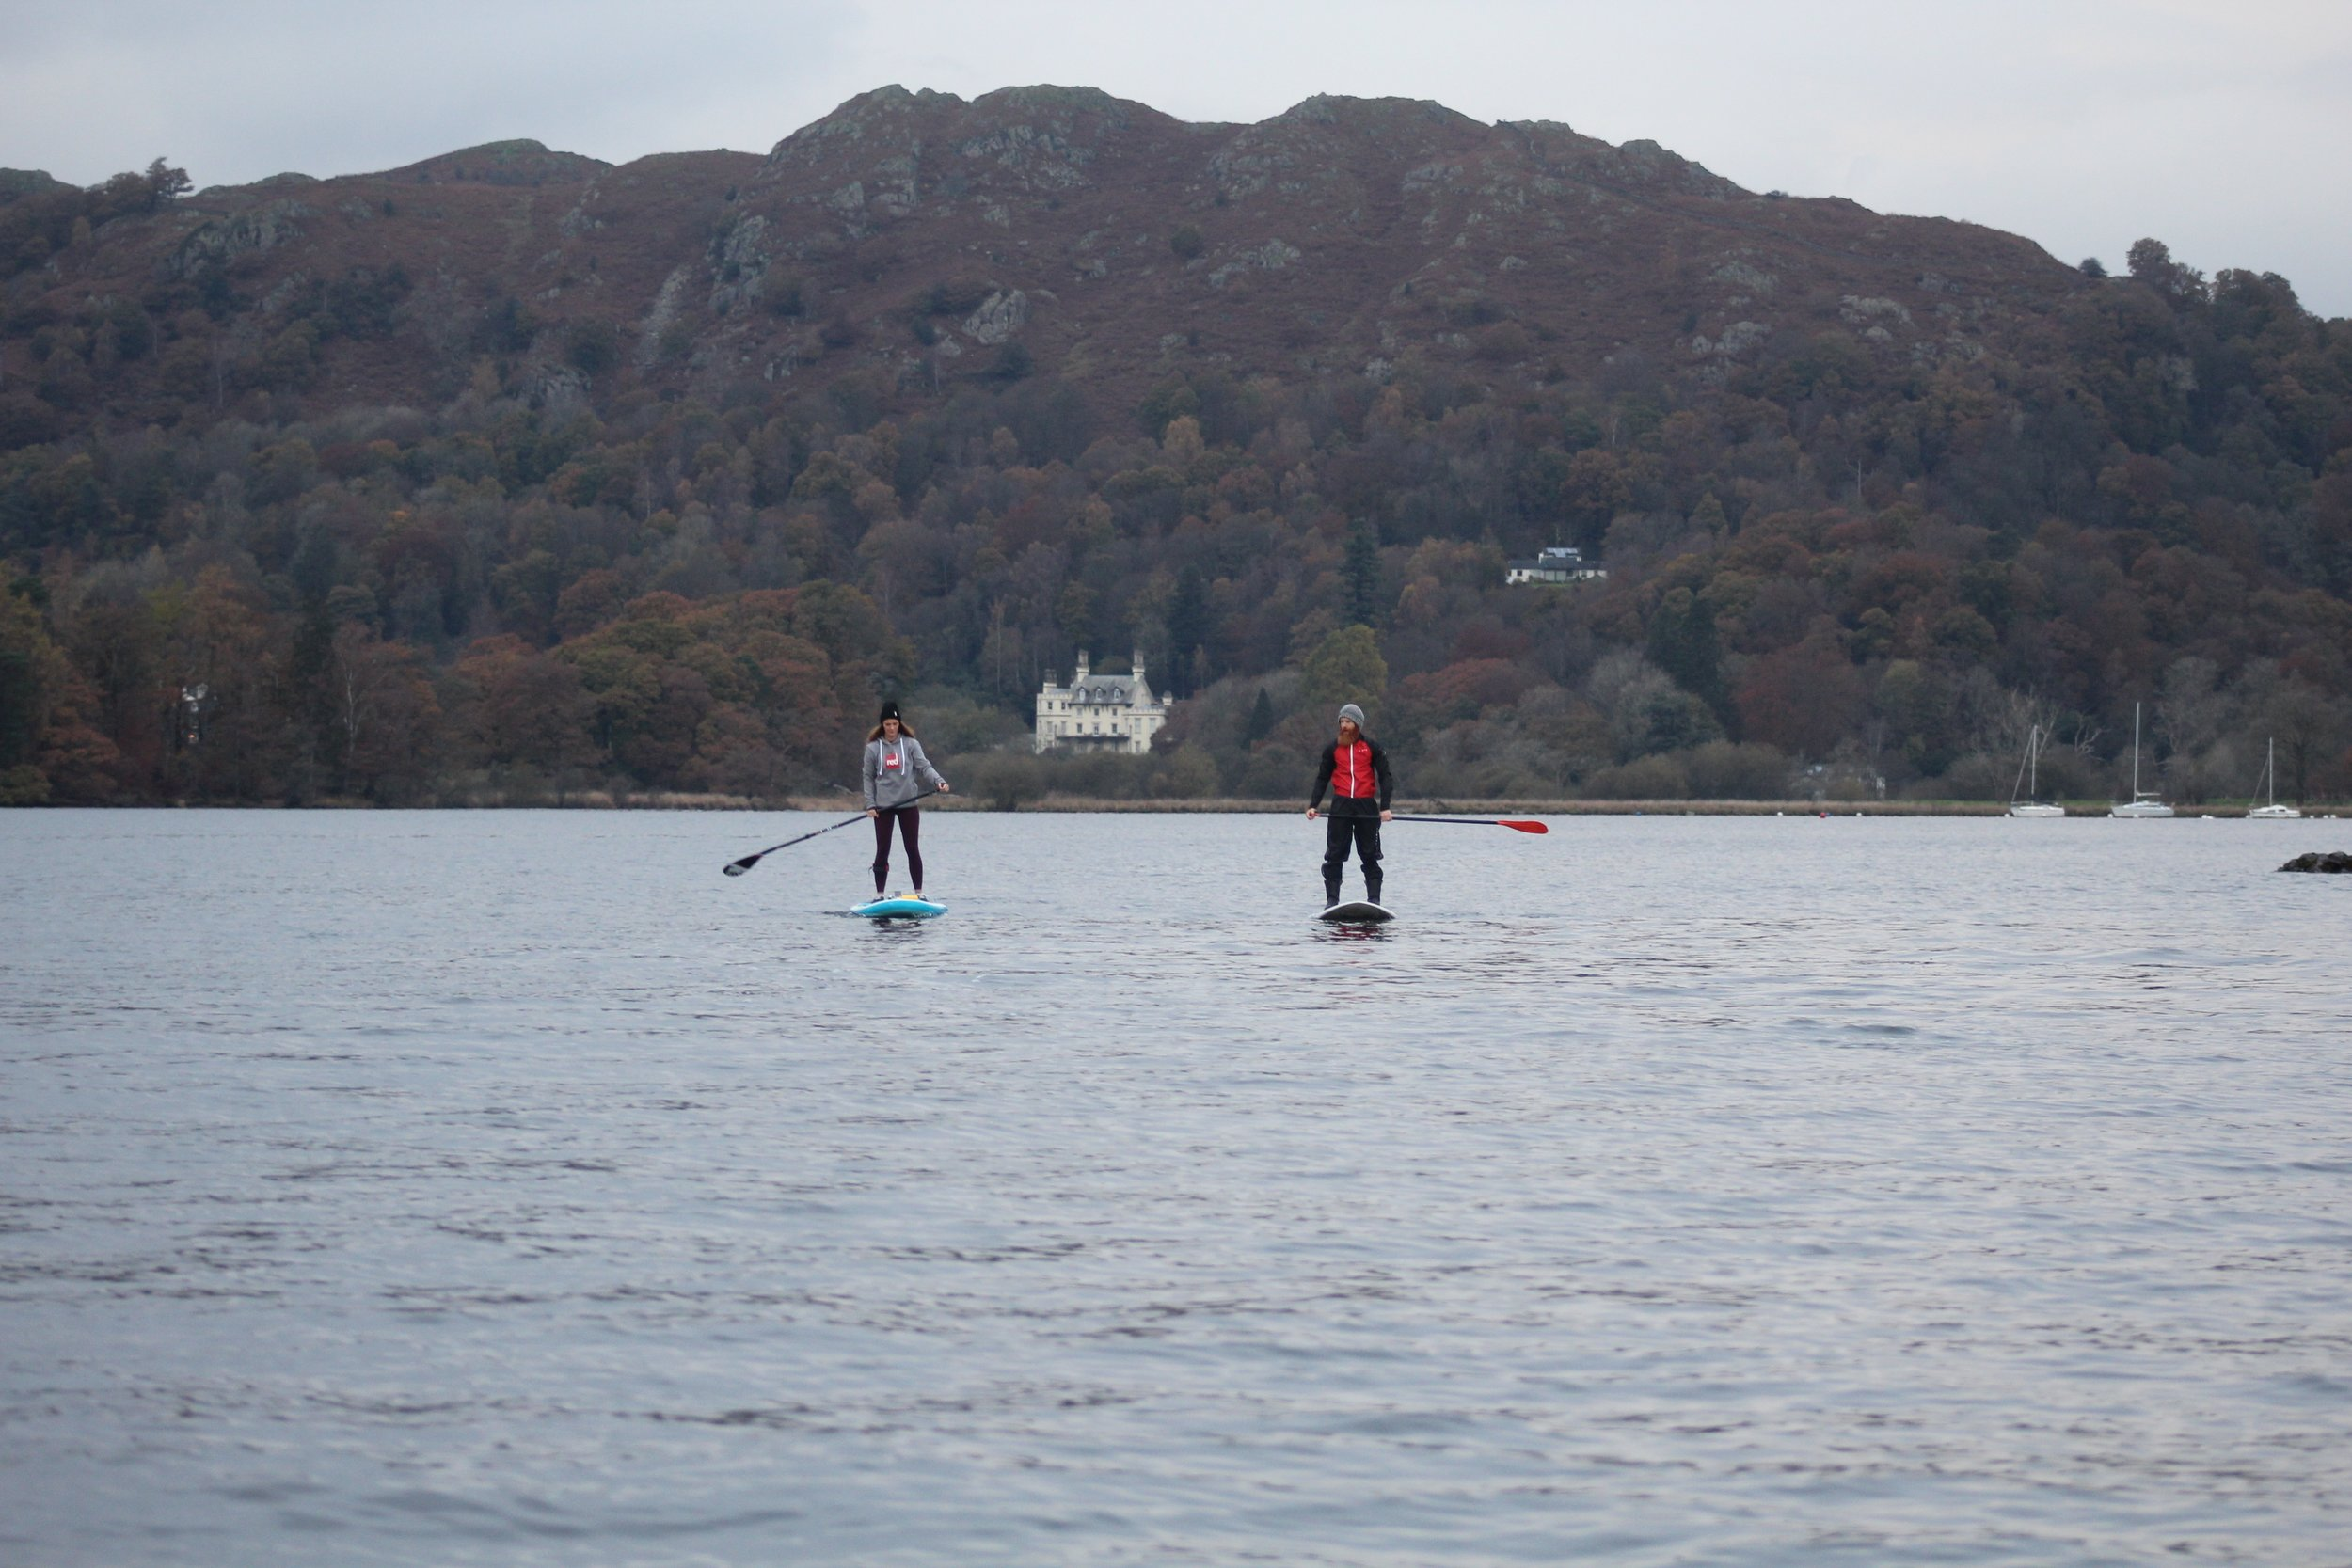 Paddle boarding on Windermere